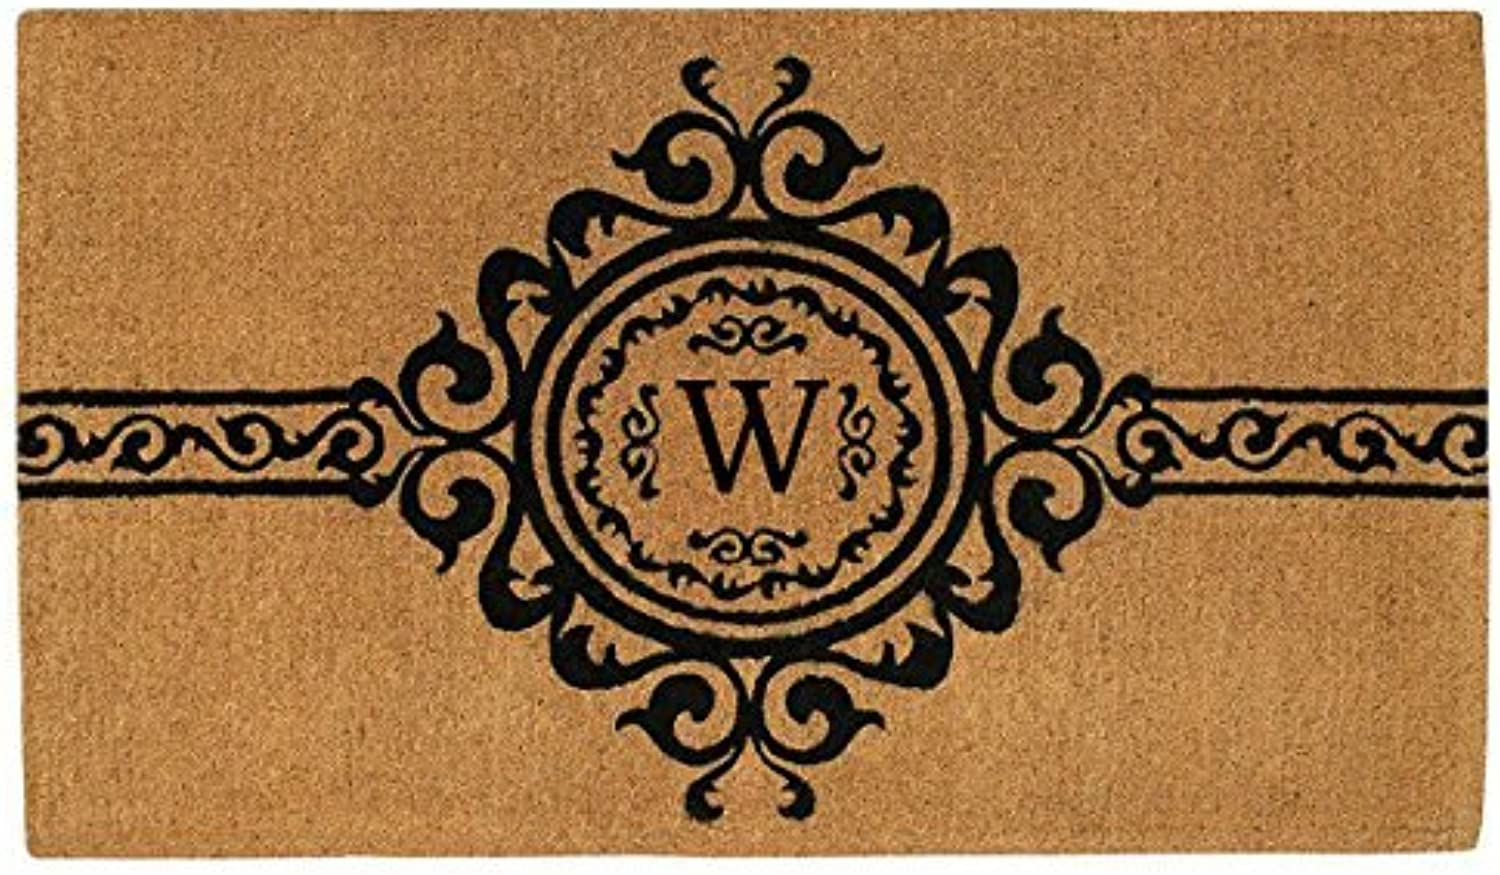 Home & More 180071830W Garbo Extra-Thick Doormat, 18  x 30  x 1.50 , Monogrammed Letter W, Natural Black